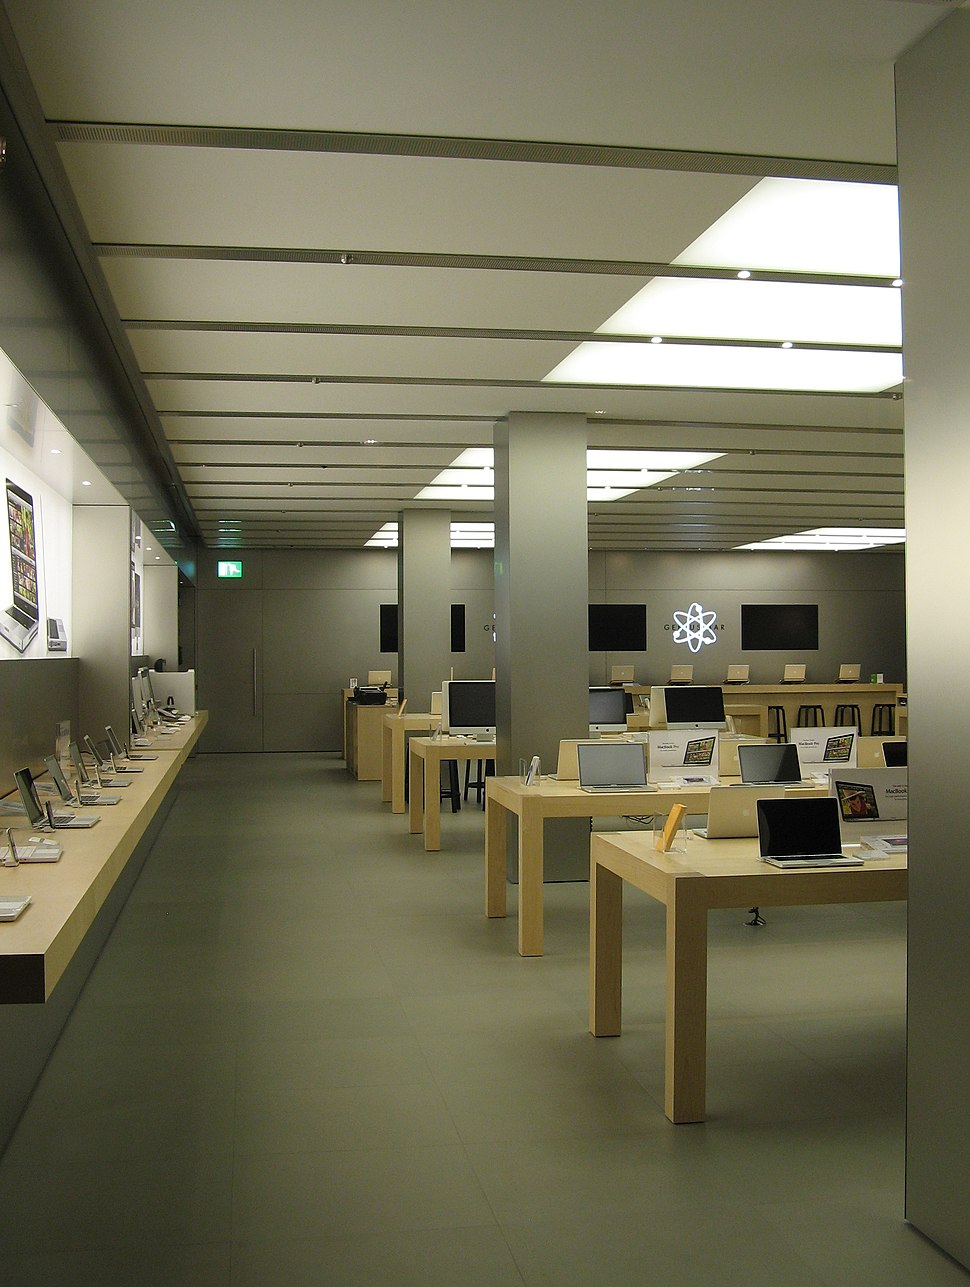 Apple Store - Howling Pixel